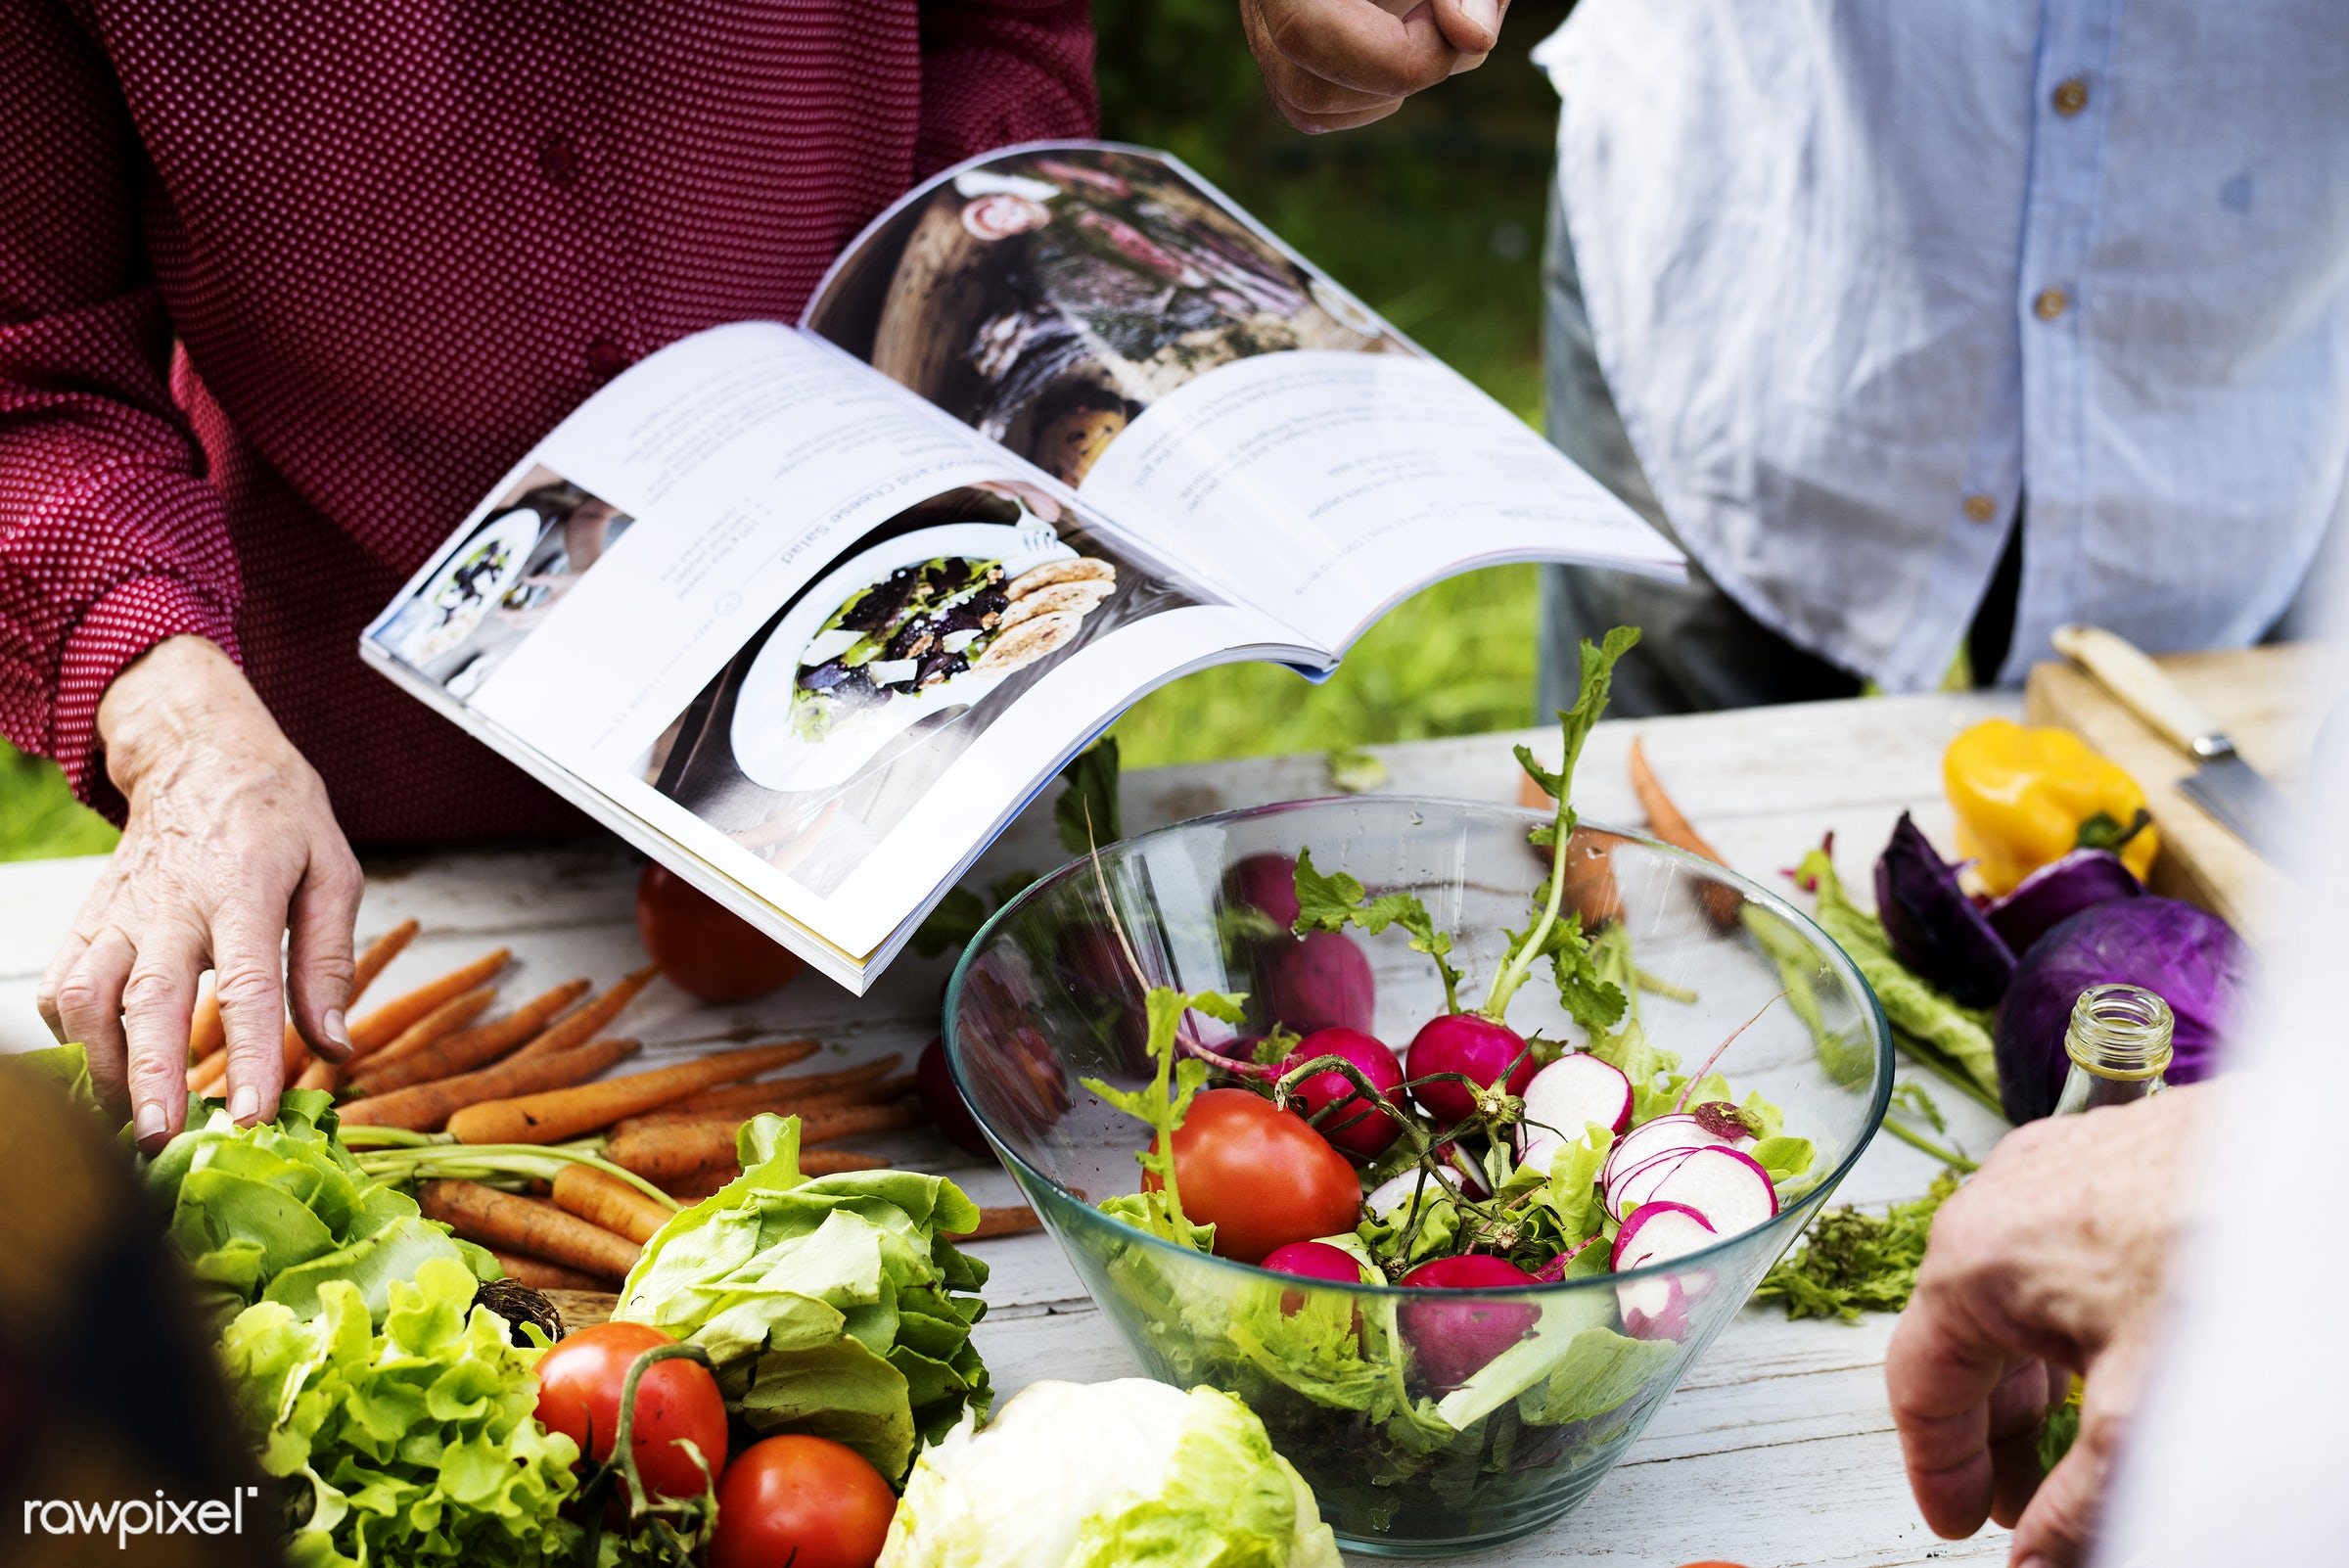 salad, recipe, yard, diverse, together, ingredients, hands, fresh, cook book, spouse, various, cooking, couple, backyard,...